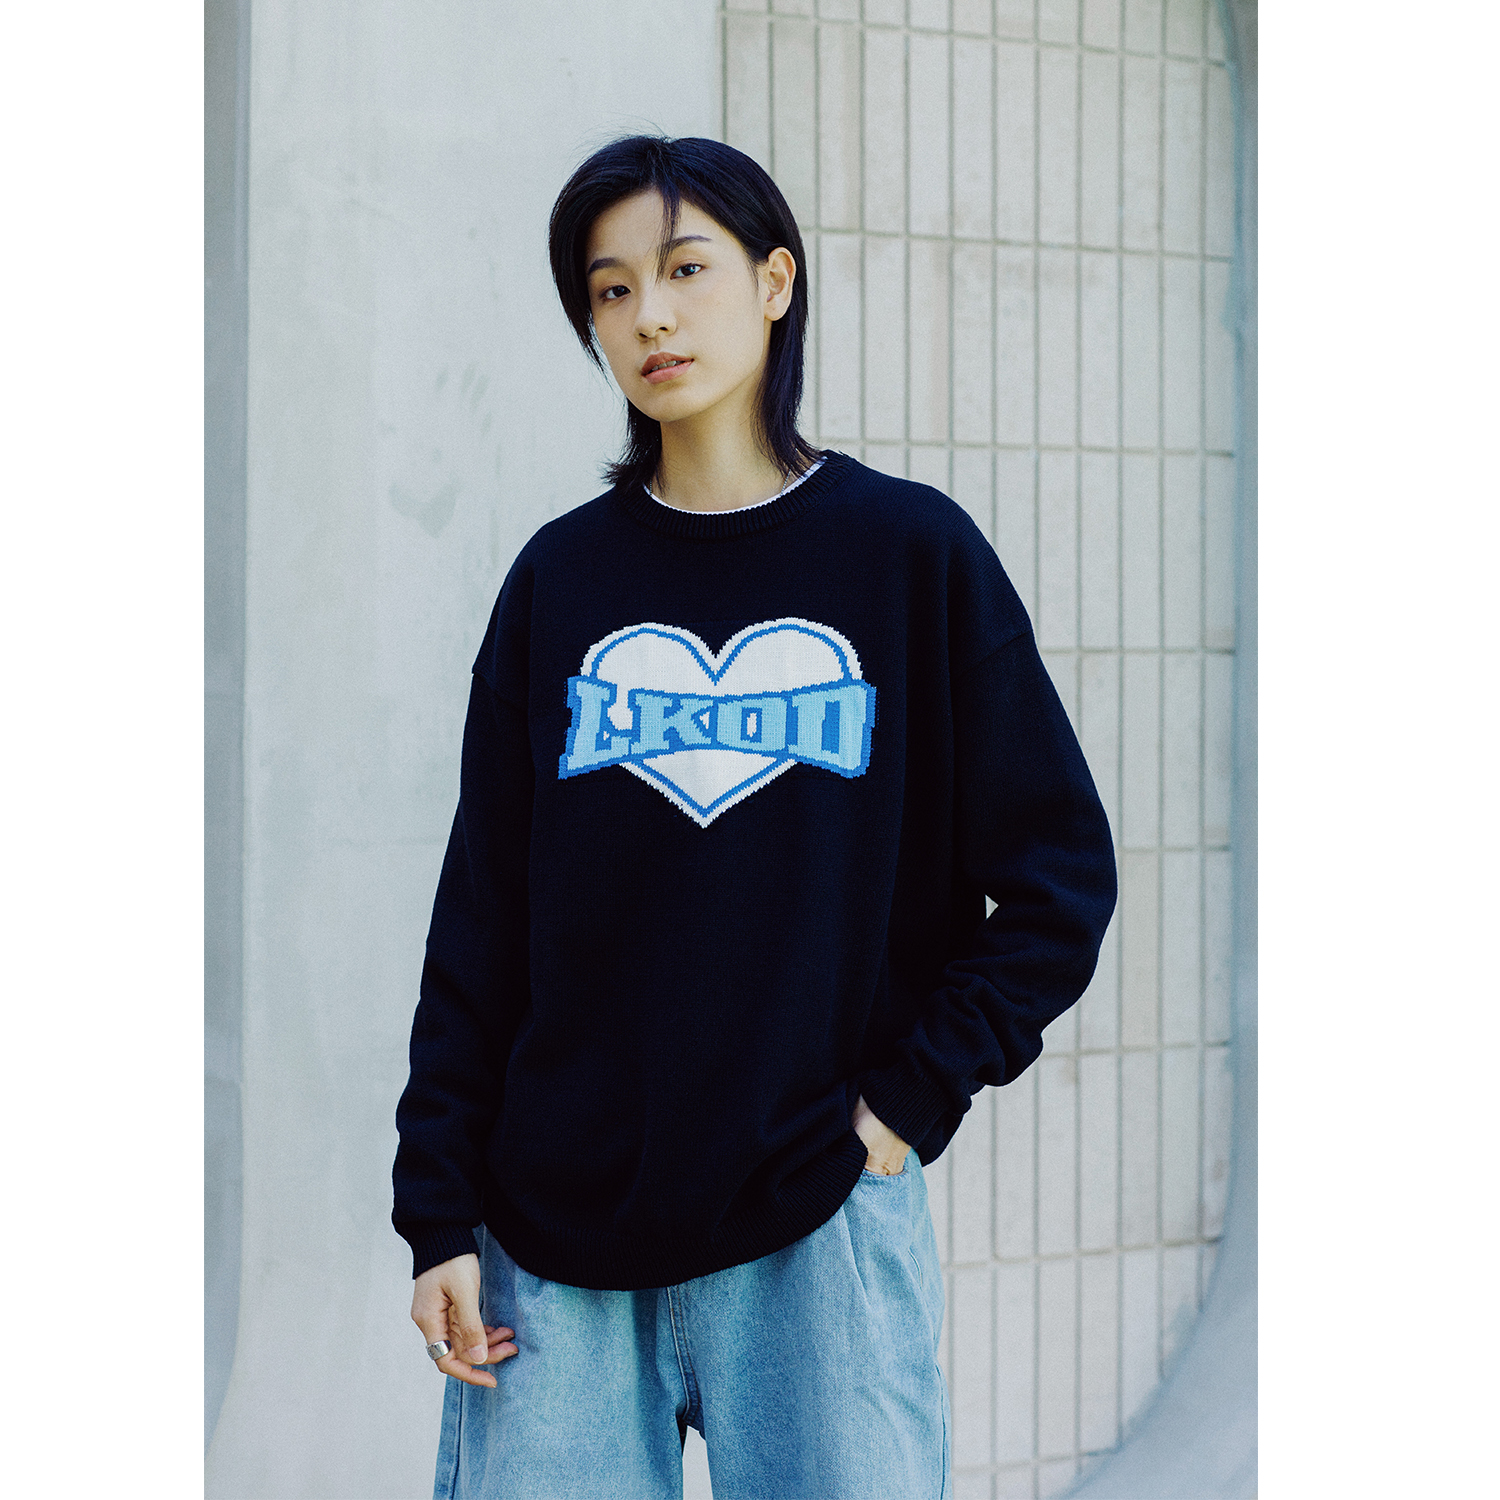 LKSTORE LKOD Autumn/Winter Love Letters Pure Cotton Round Neck Casual Street Sweater Men and Women Same Style Knitwear